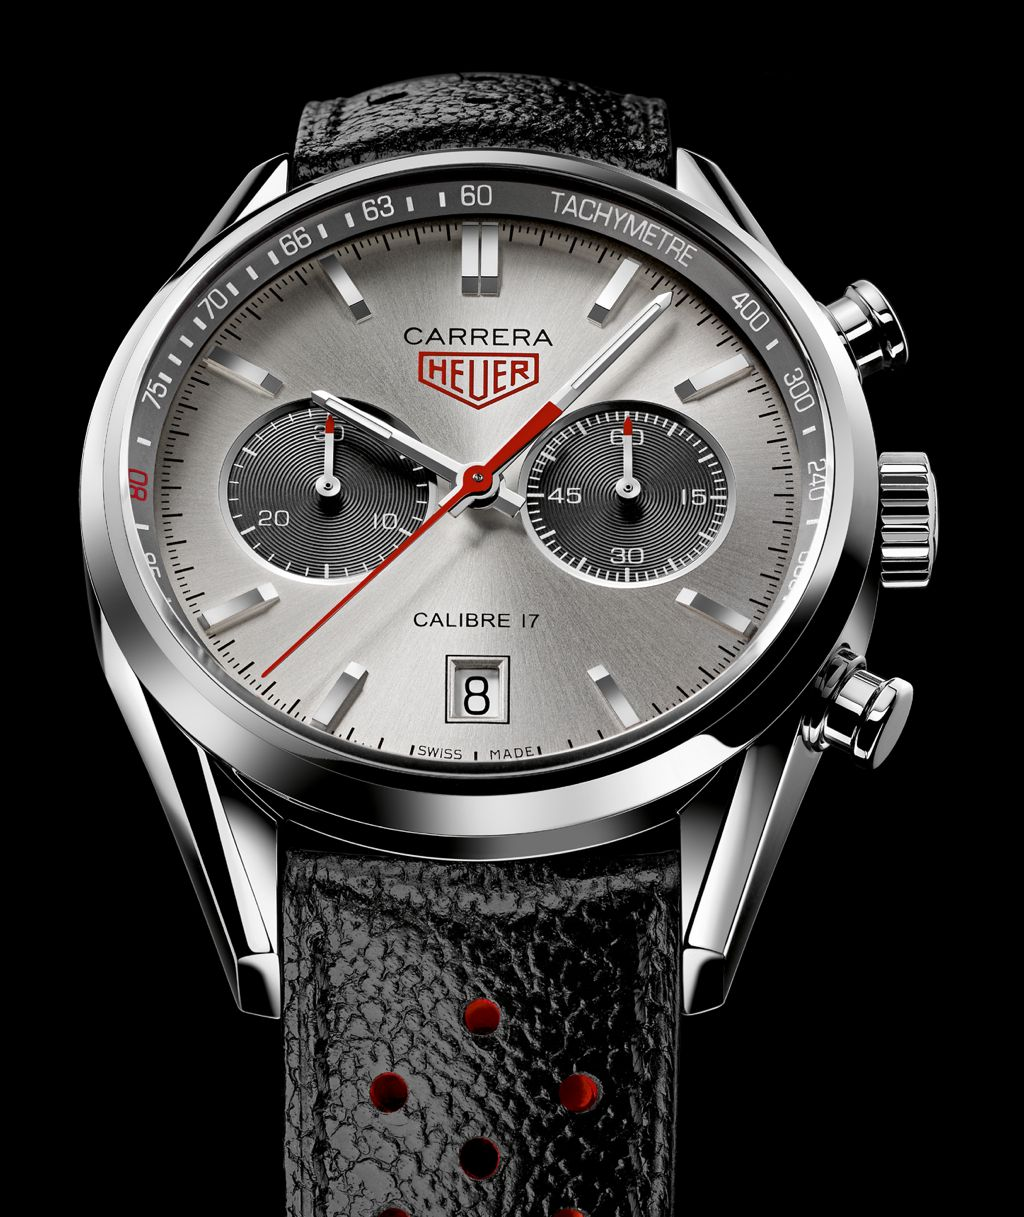 00000__Tag_Heuer_Carrera_Jack_Heuer_80th.jpg